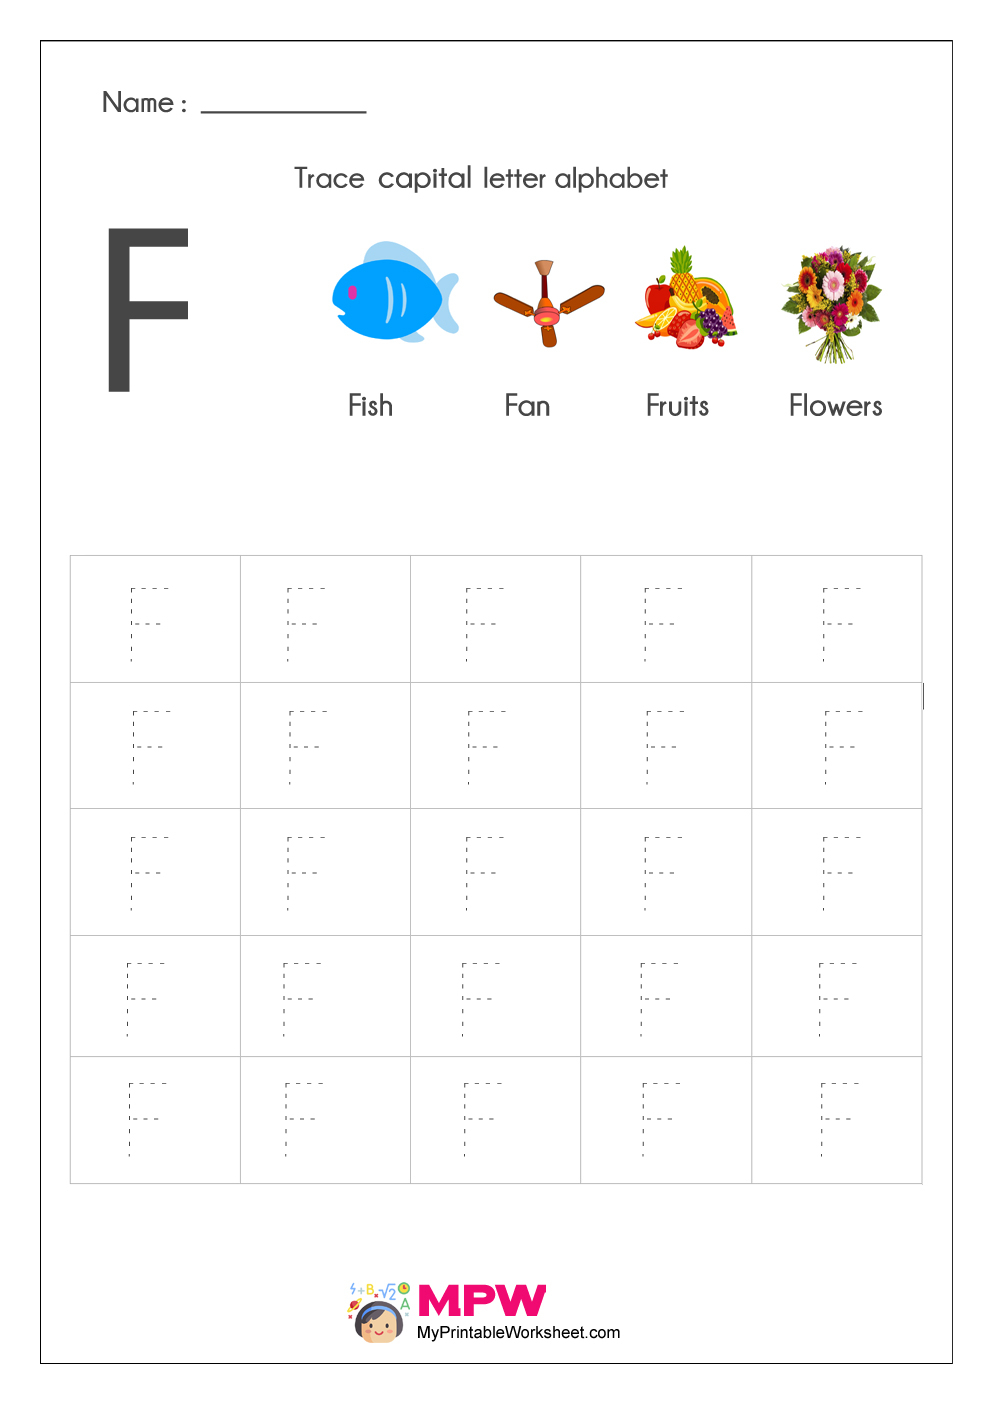 Alphabet Tracing Worksheets, Printable English Capital regarding Letter F Tracing Worksheets